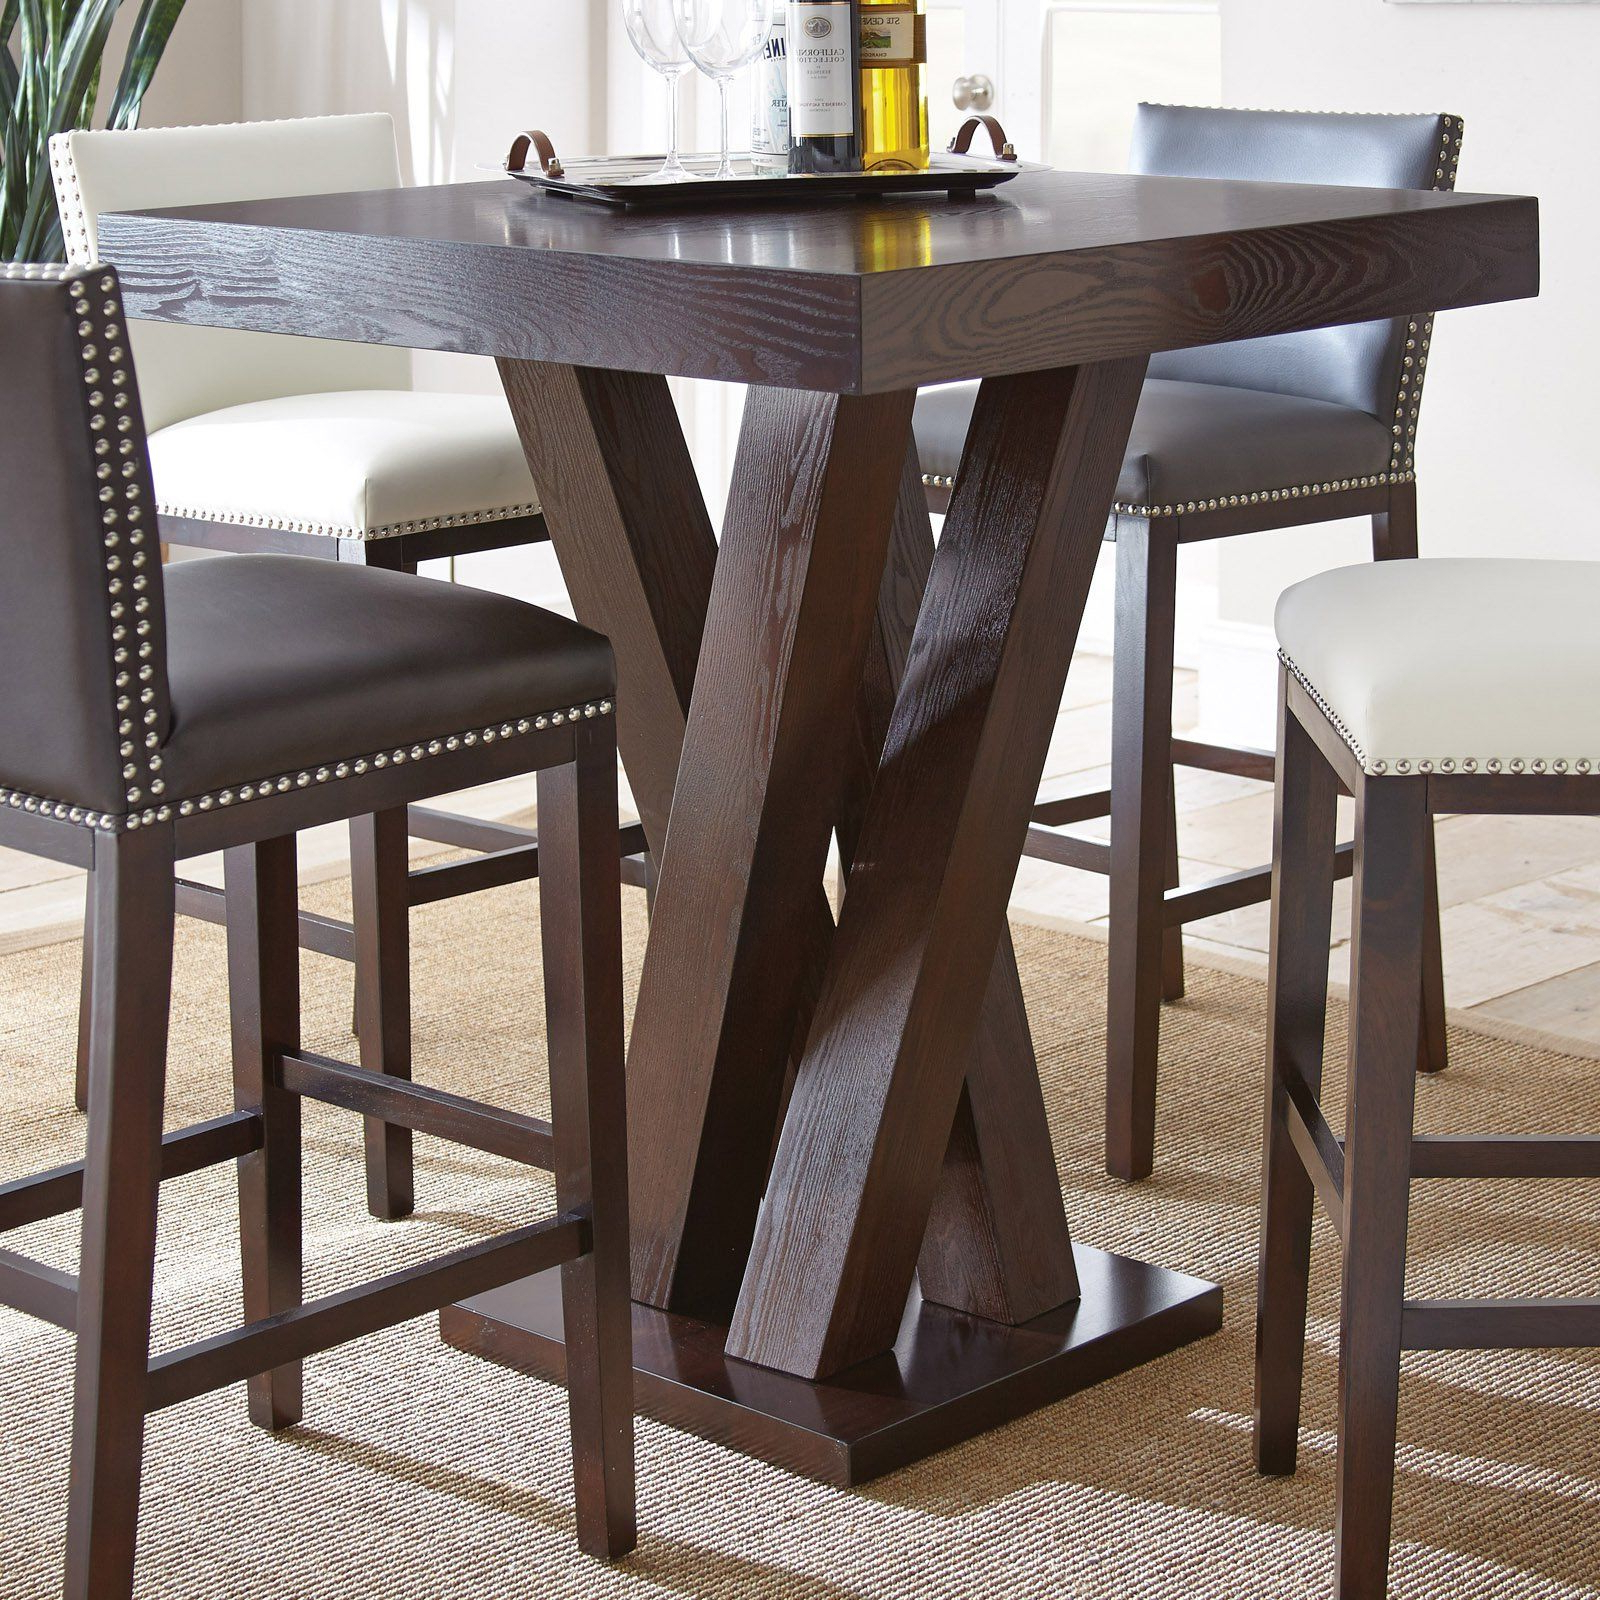 From Intended For Well Liked Patio Square Bar Dining Tables (View 4 of 30)